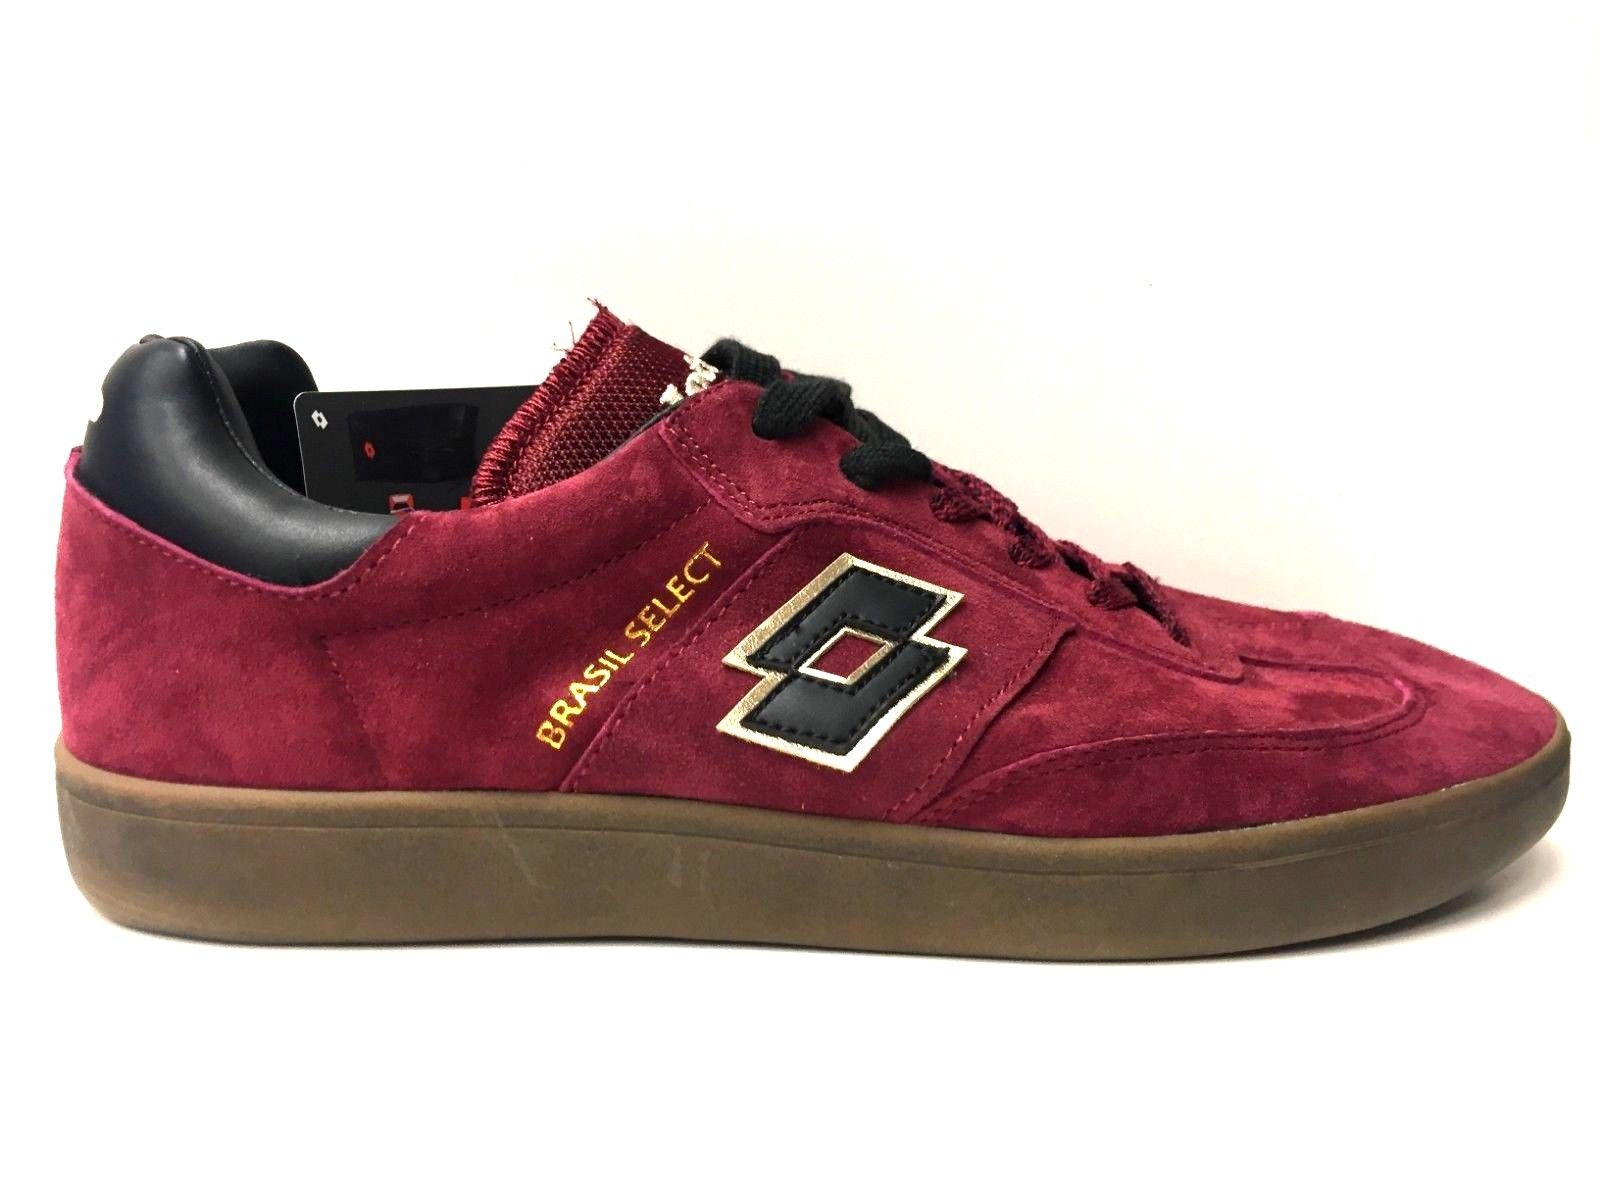 SCARPE SNEAKERS UOMO LOTTO 1992 BRASIL SELECT T7367 RED PRT BLACK PELLE AI